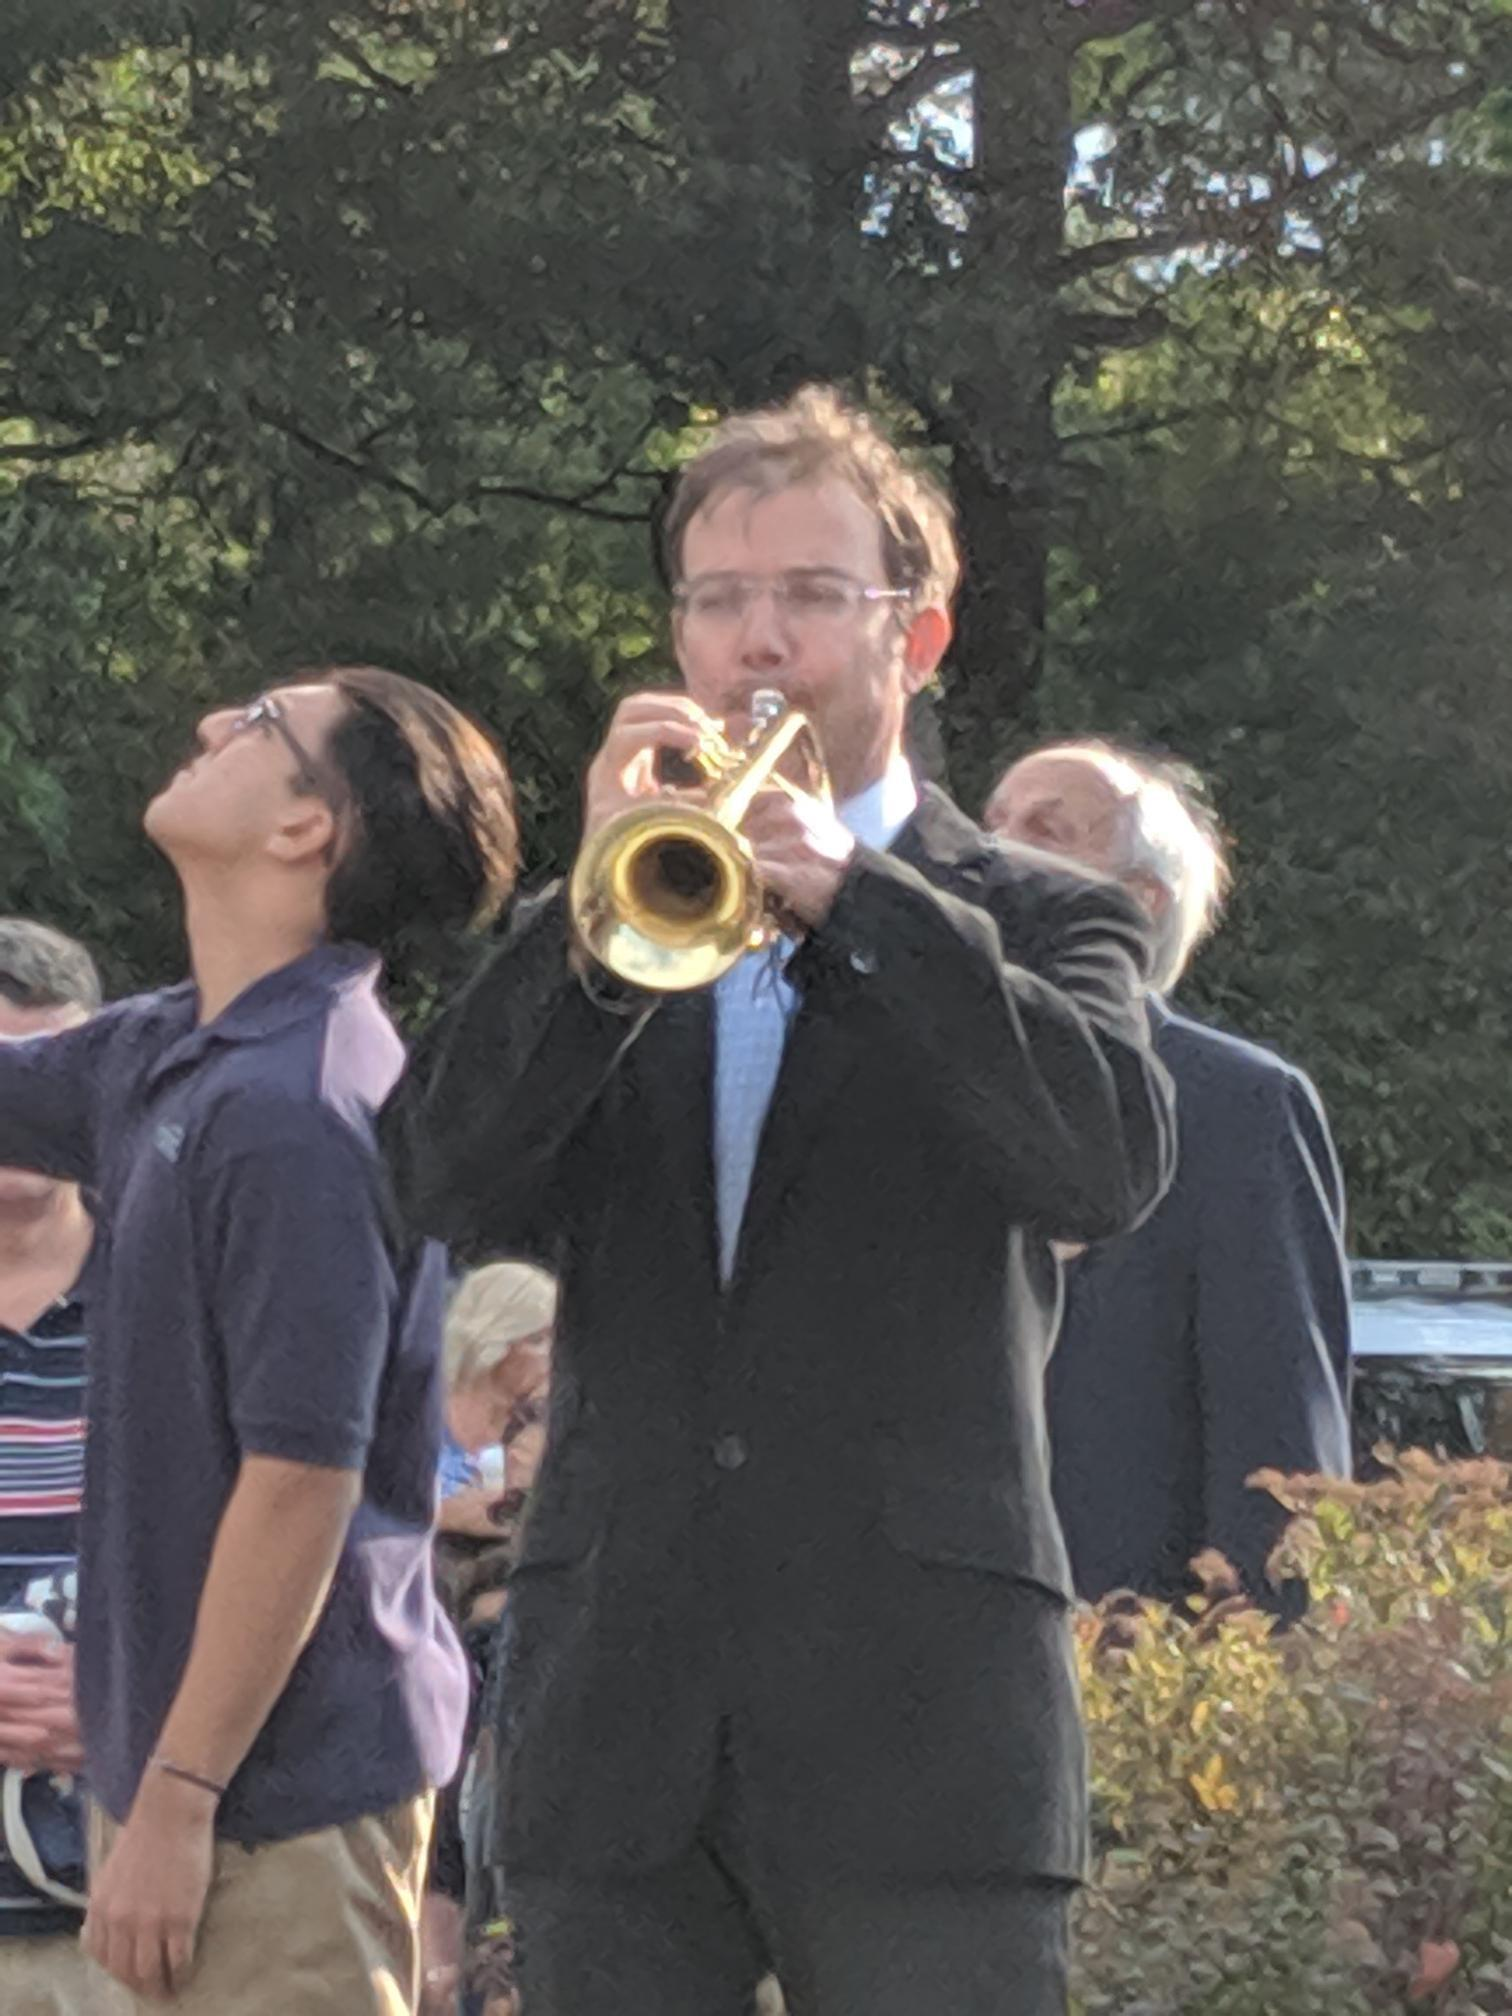 trumpet at 911 ceremony